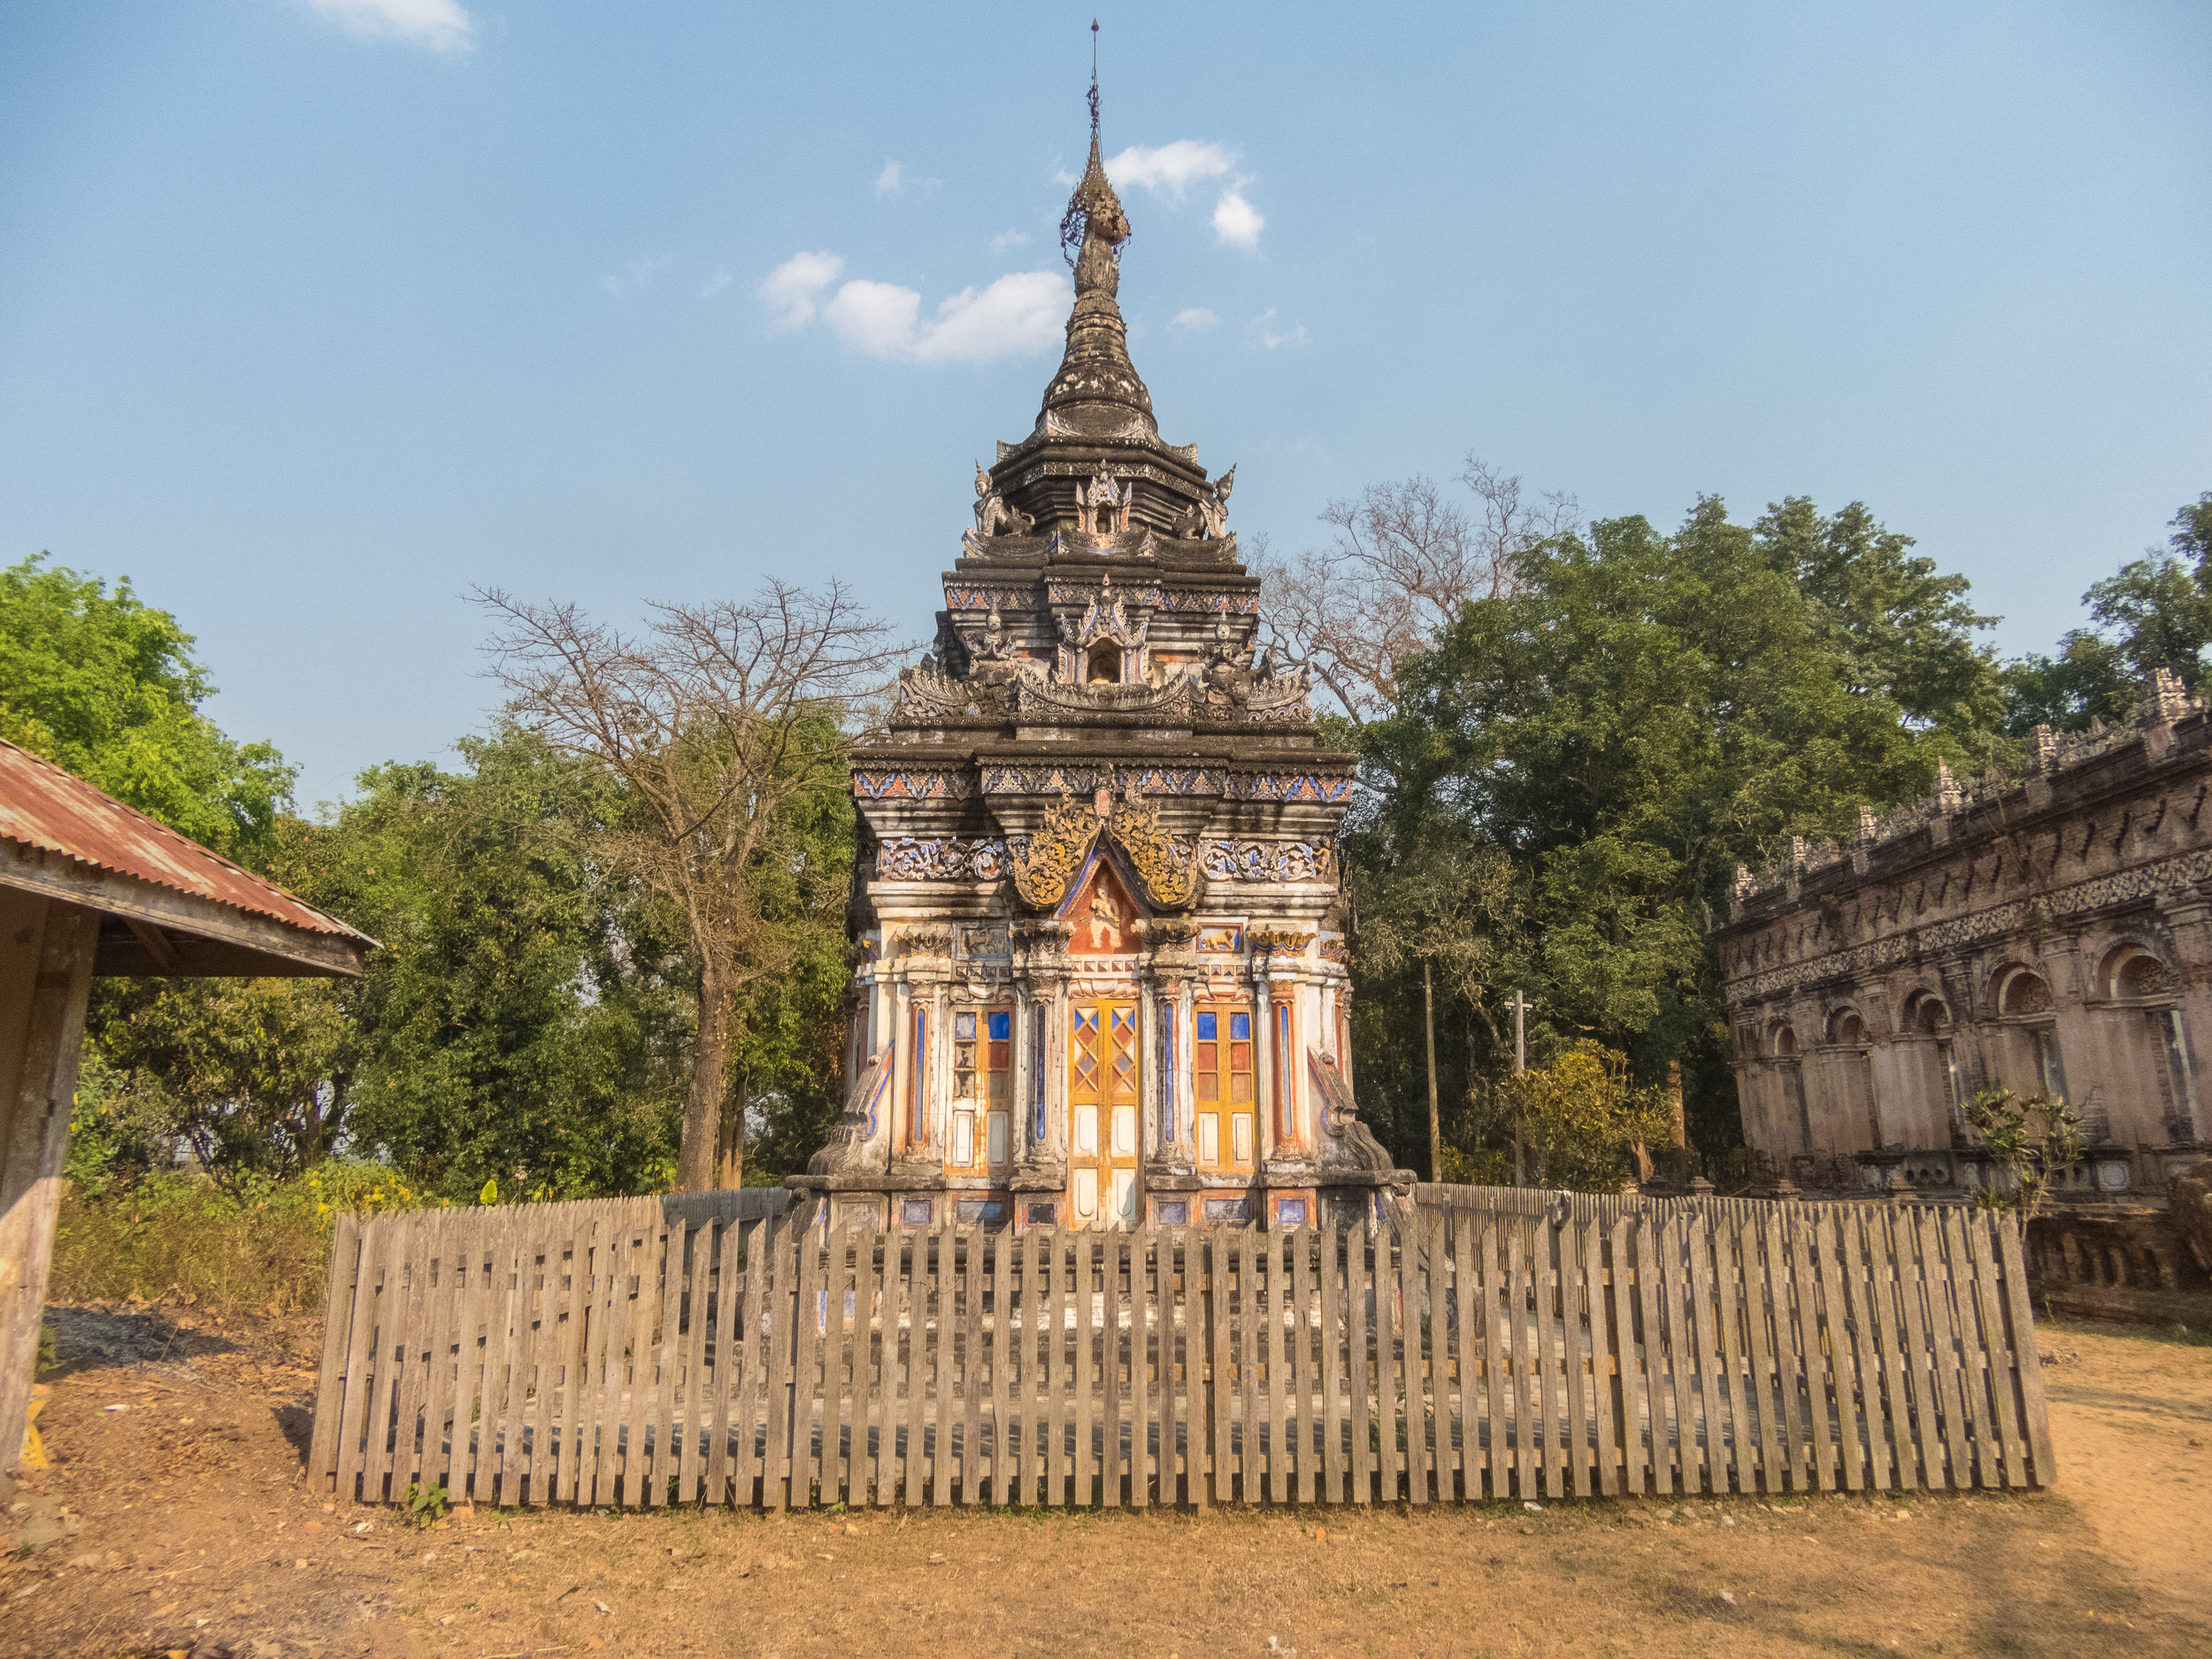 Here's another cool structure. I think it is a stupa - where Buddhist relics are kept.